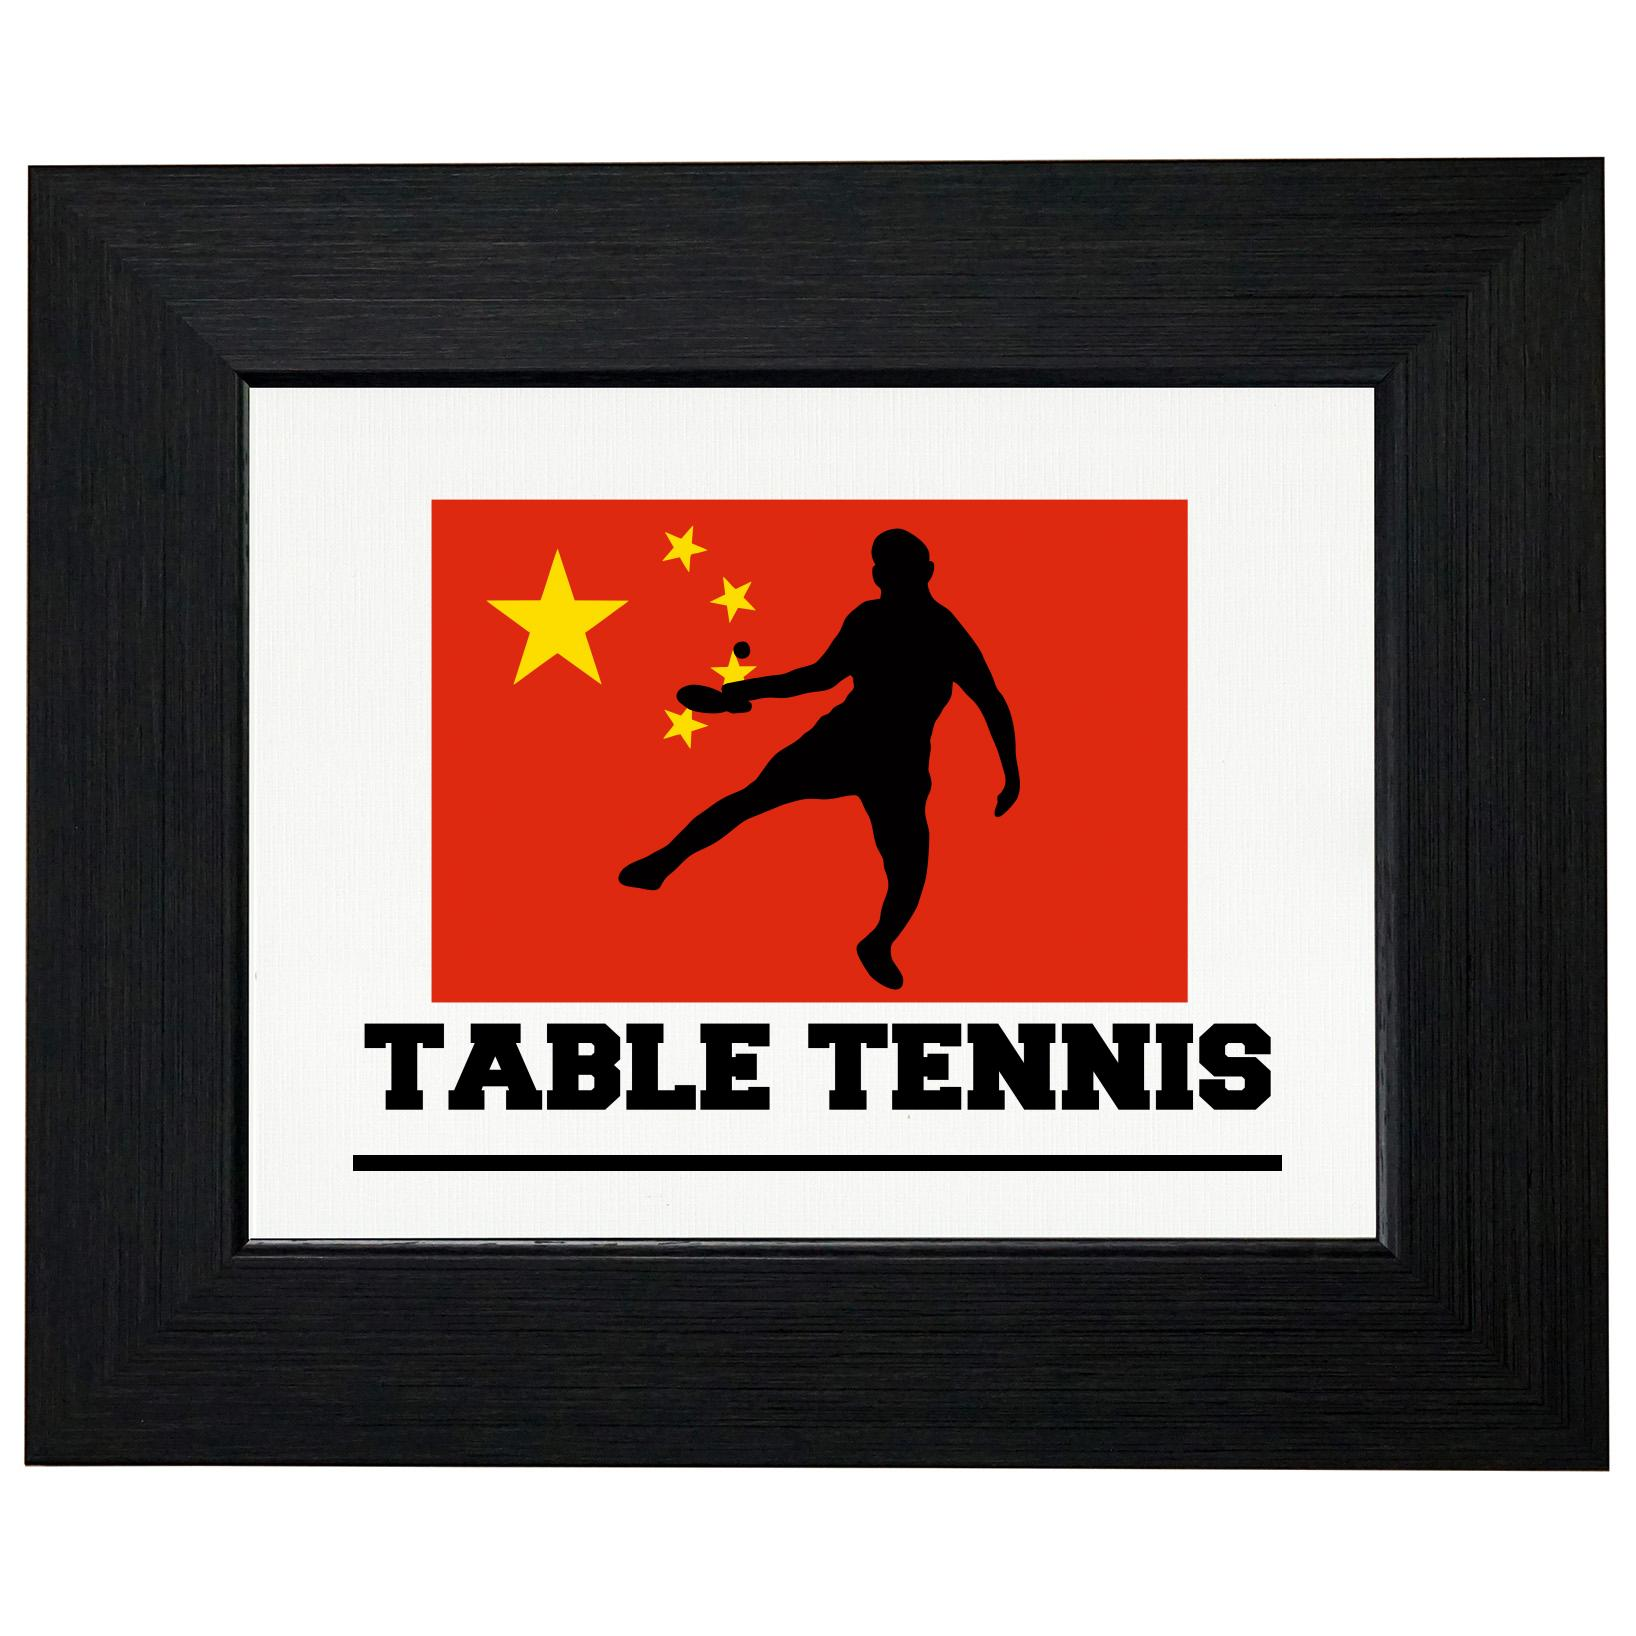 China Olympic Ping Pong Flag Silhouette Framed Print Poster Wall or Desk Mount Options by Royal Prints